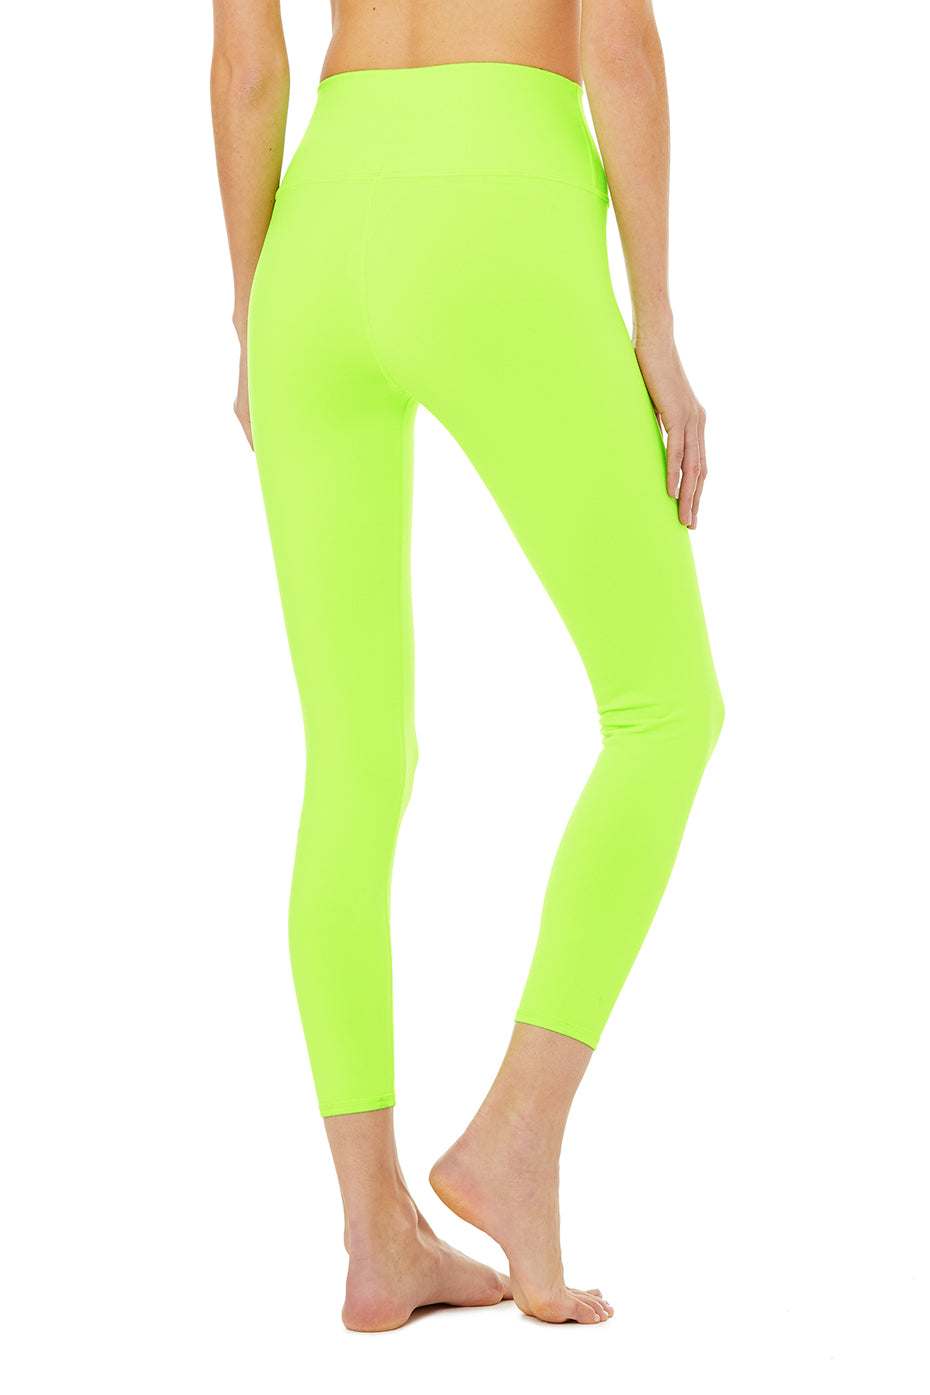 Limited-Edition Exclusive 7/8 High-Waist Neon Airbrush Legging